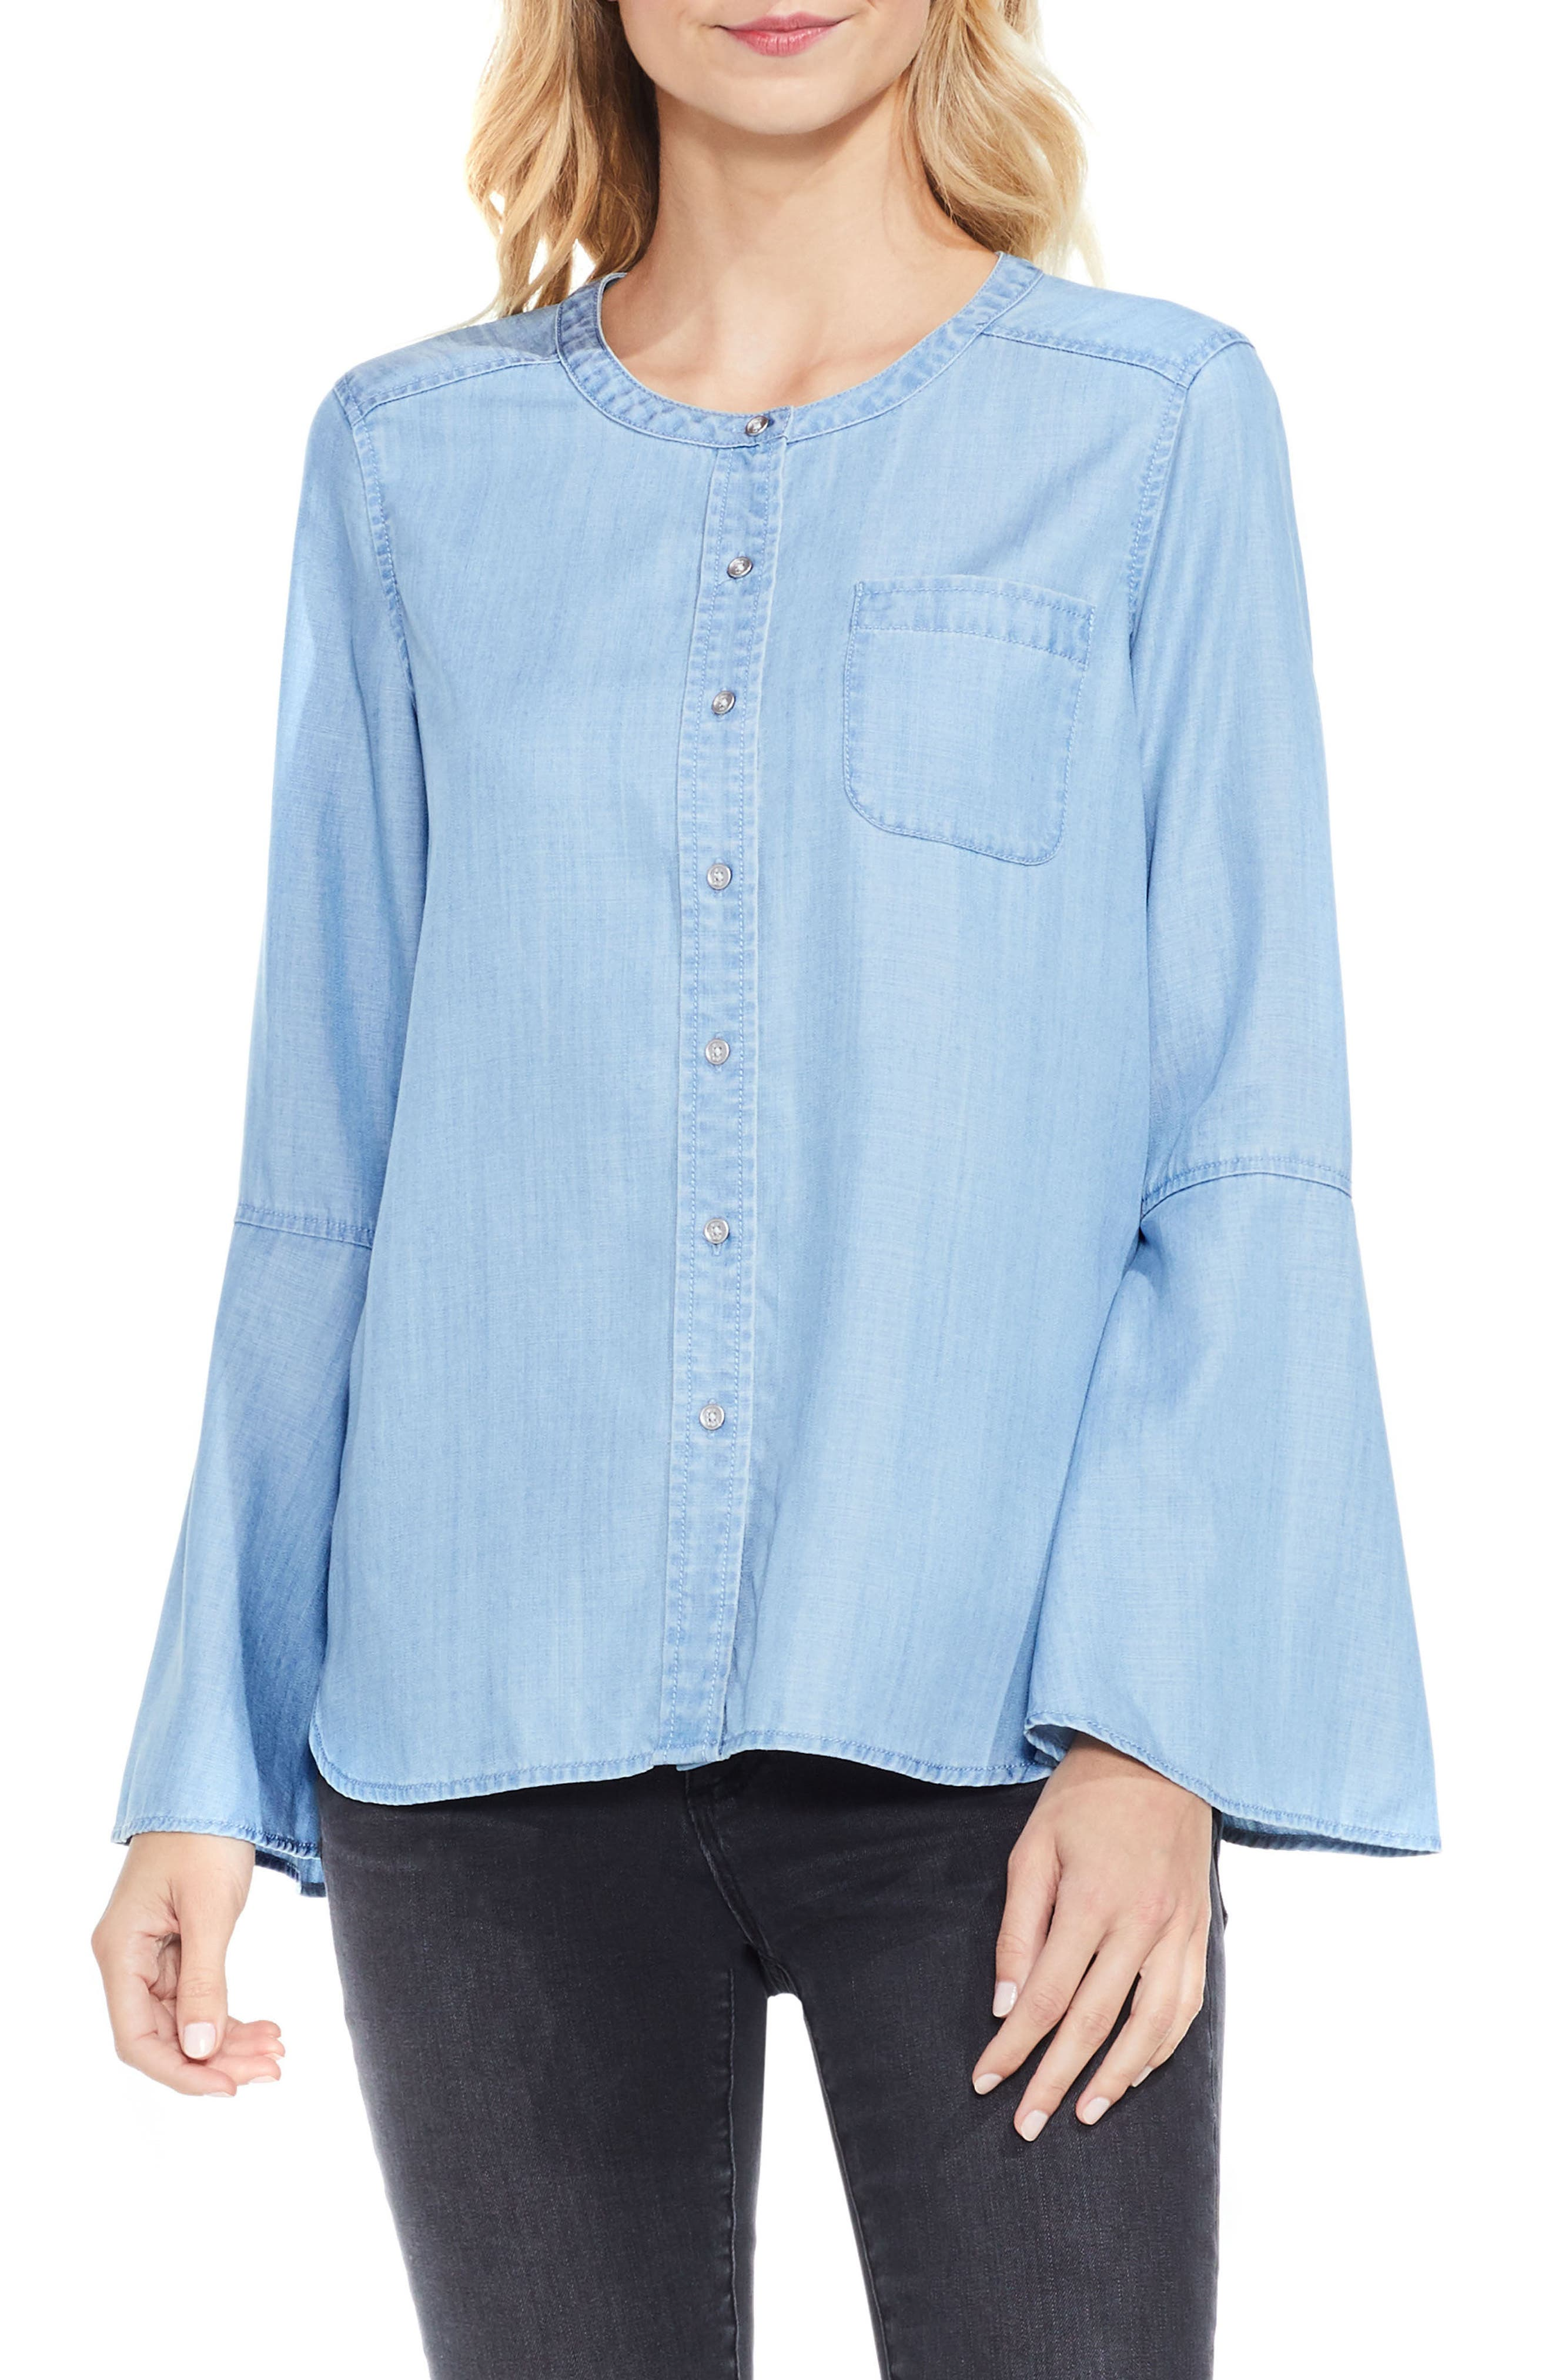 Alternate Image 1 Selected - Two by Vince Camuto Bell Sleeve Chambray Blouse